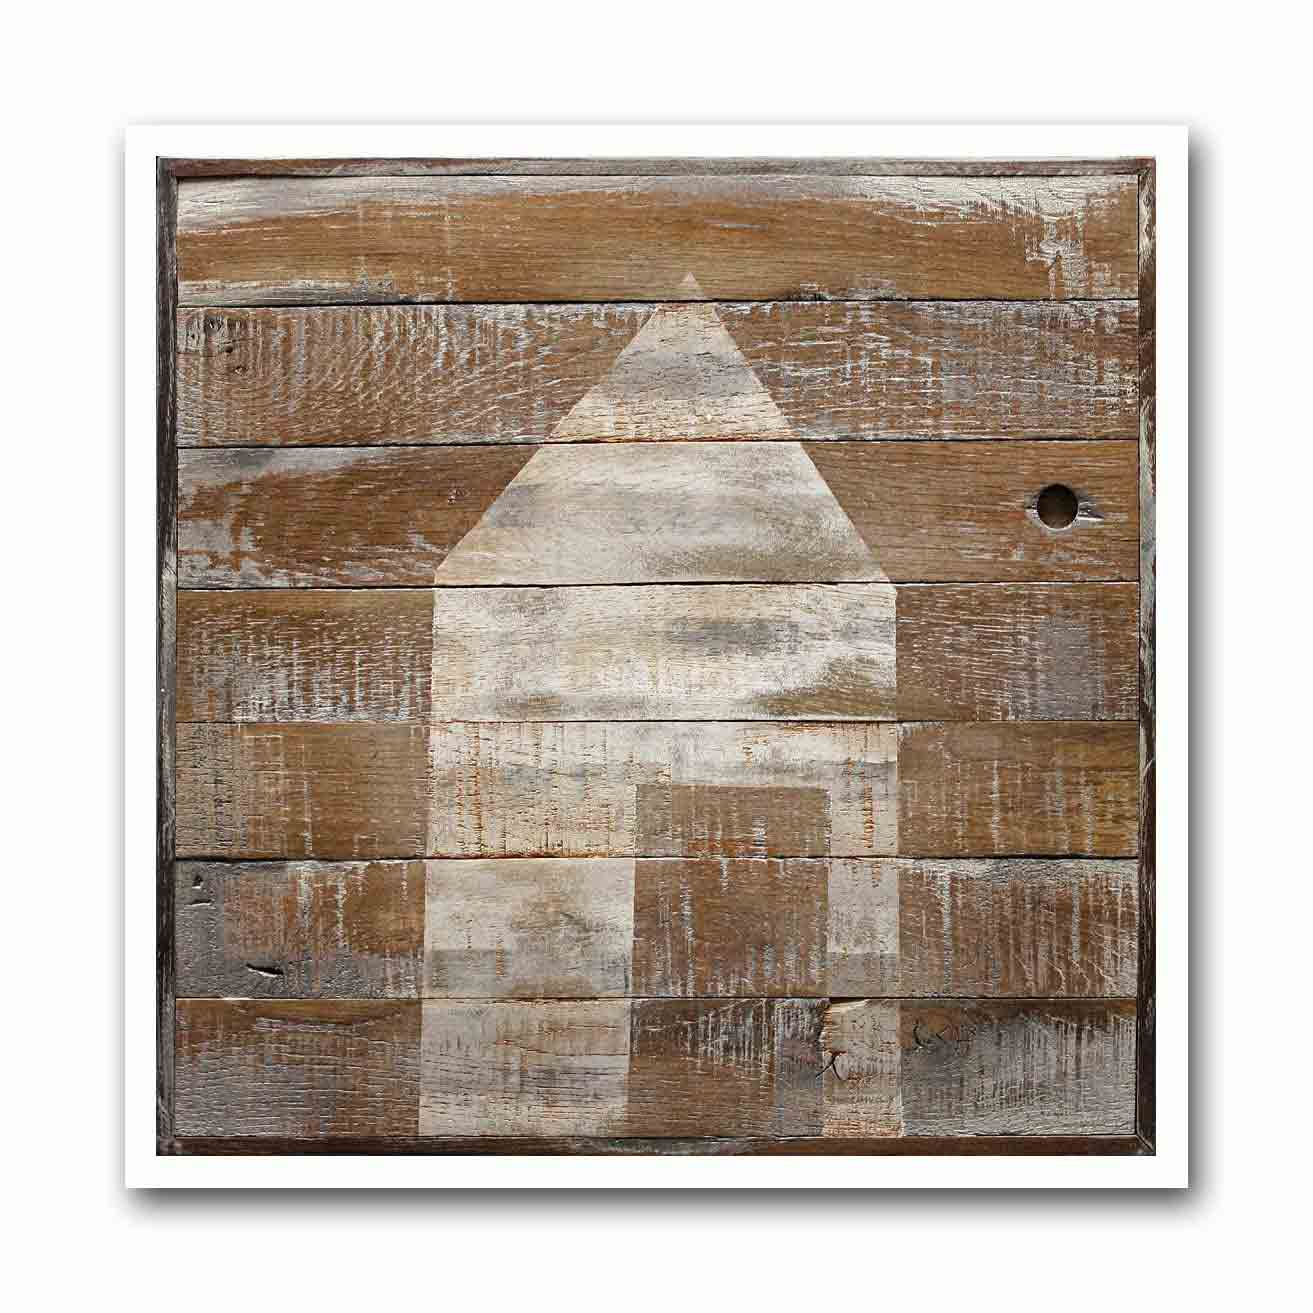 Swiss Wood Shed #1 Archival Print